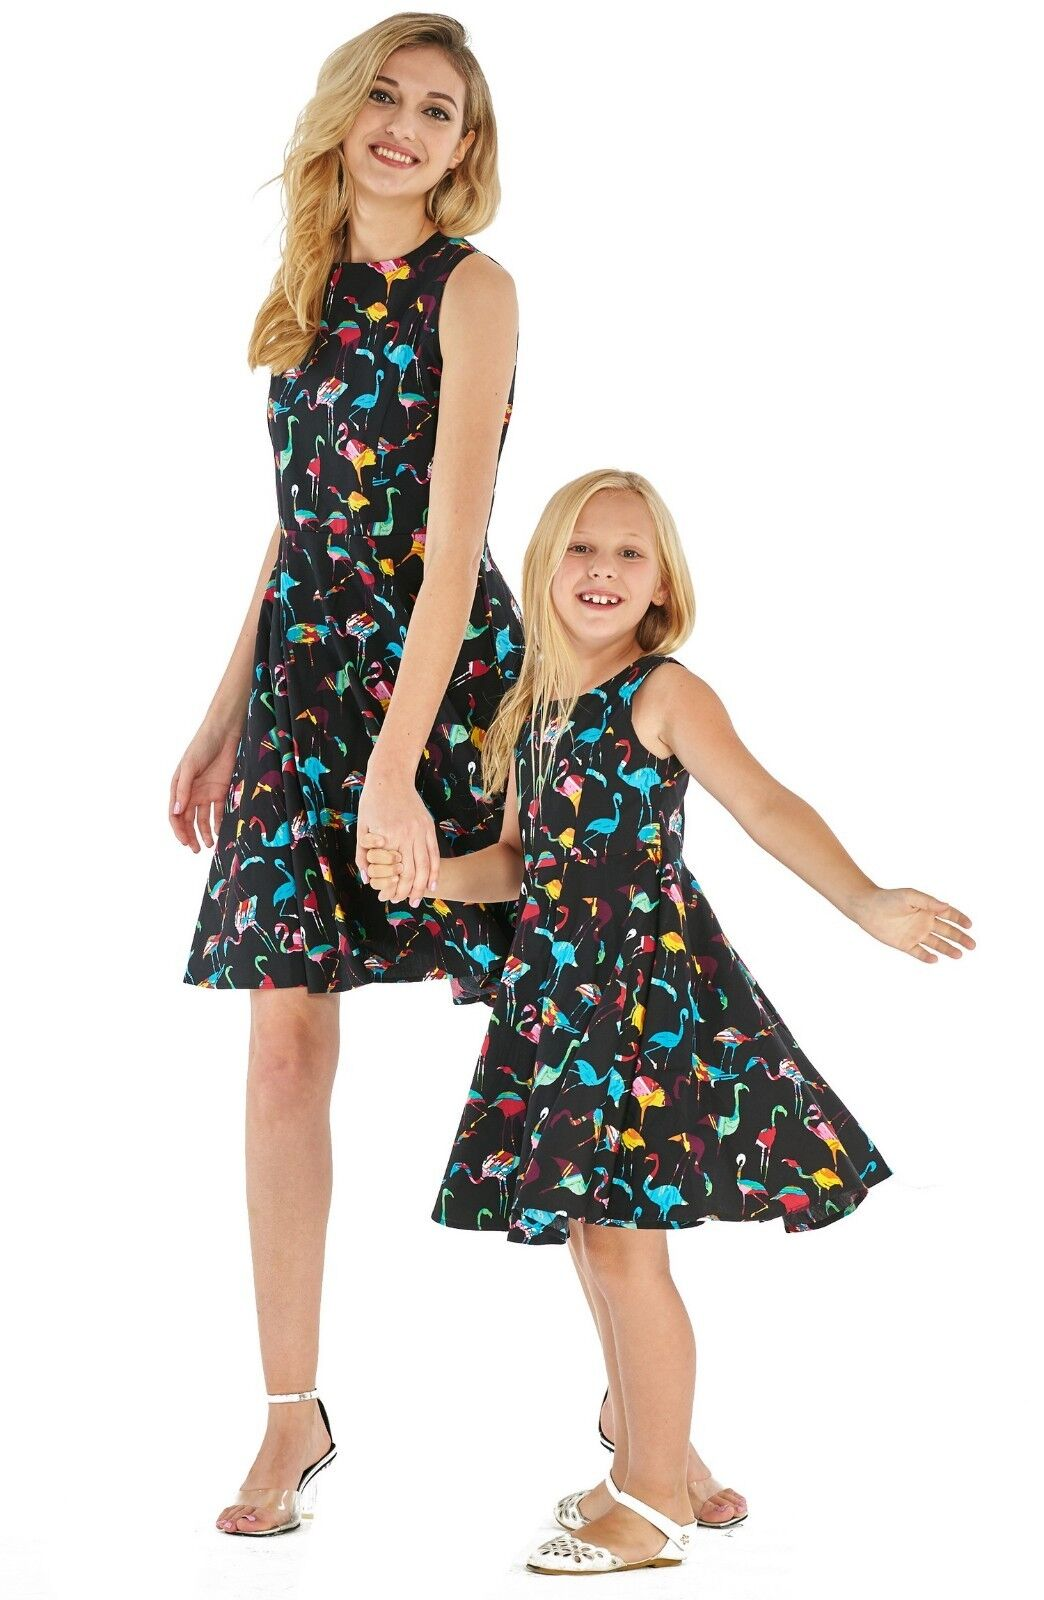 Hawaii Hangover Mother Daughter Matching Luau Outfit In Flamingo Party Black